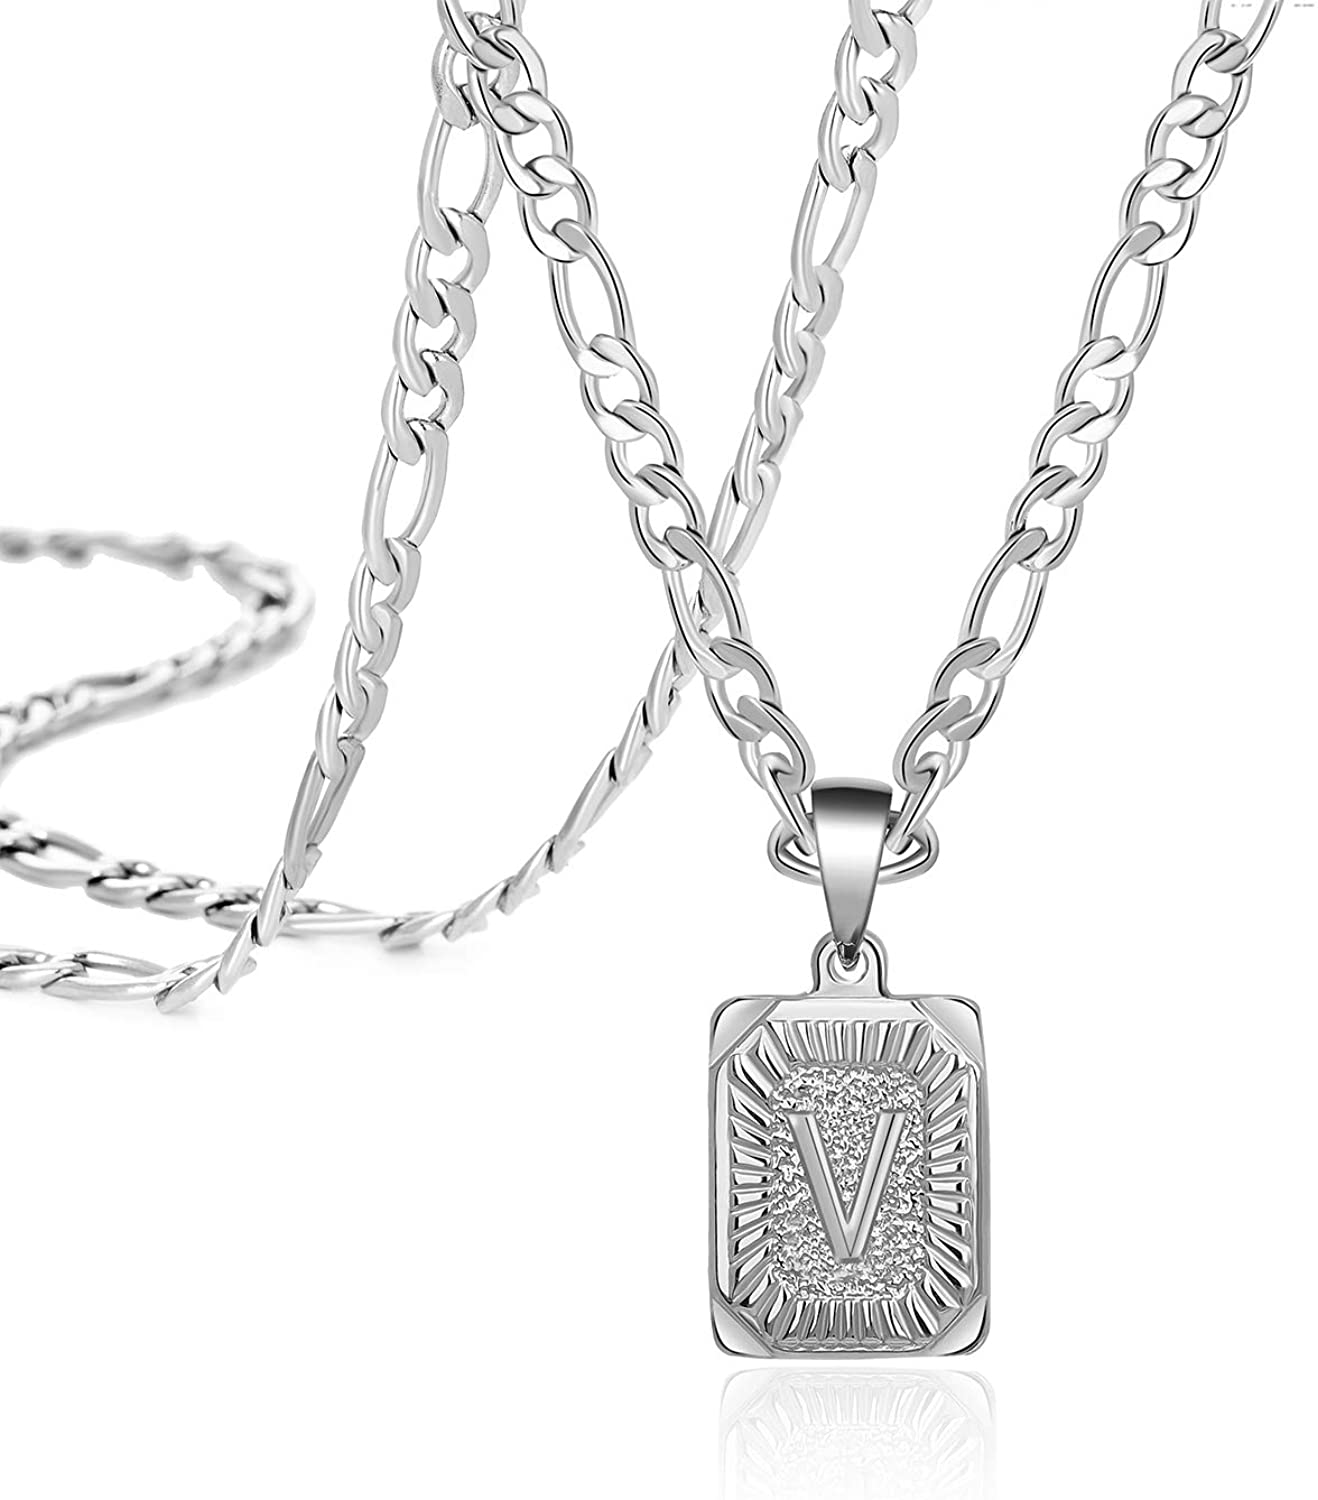 Joycuff Silver Square Initial Necklaces for Women Men Teen Girls Boys Husband Dad Mom Daughter Personalized Letter Name 26 Alphabets Stainless Steel Figaro Chain Medallion Pendant Necklace